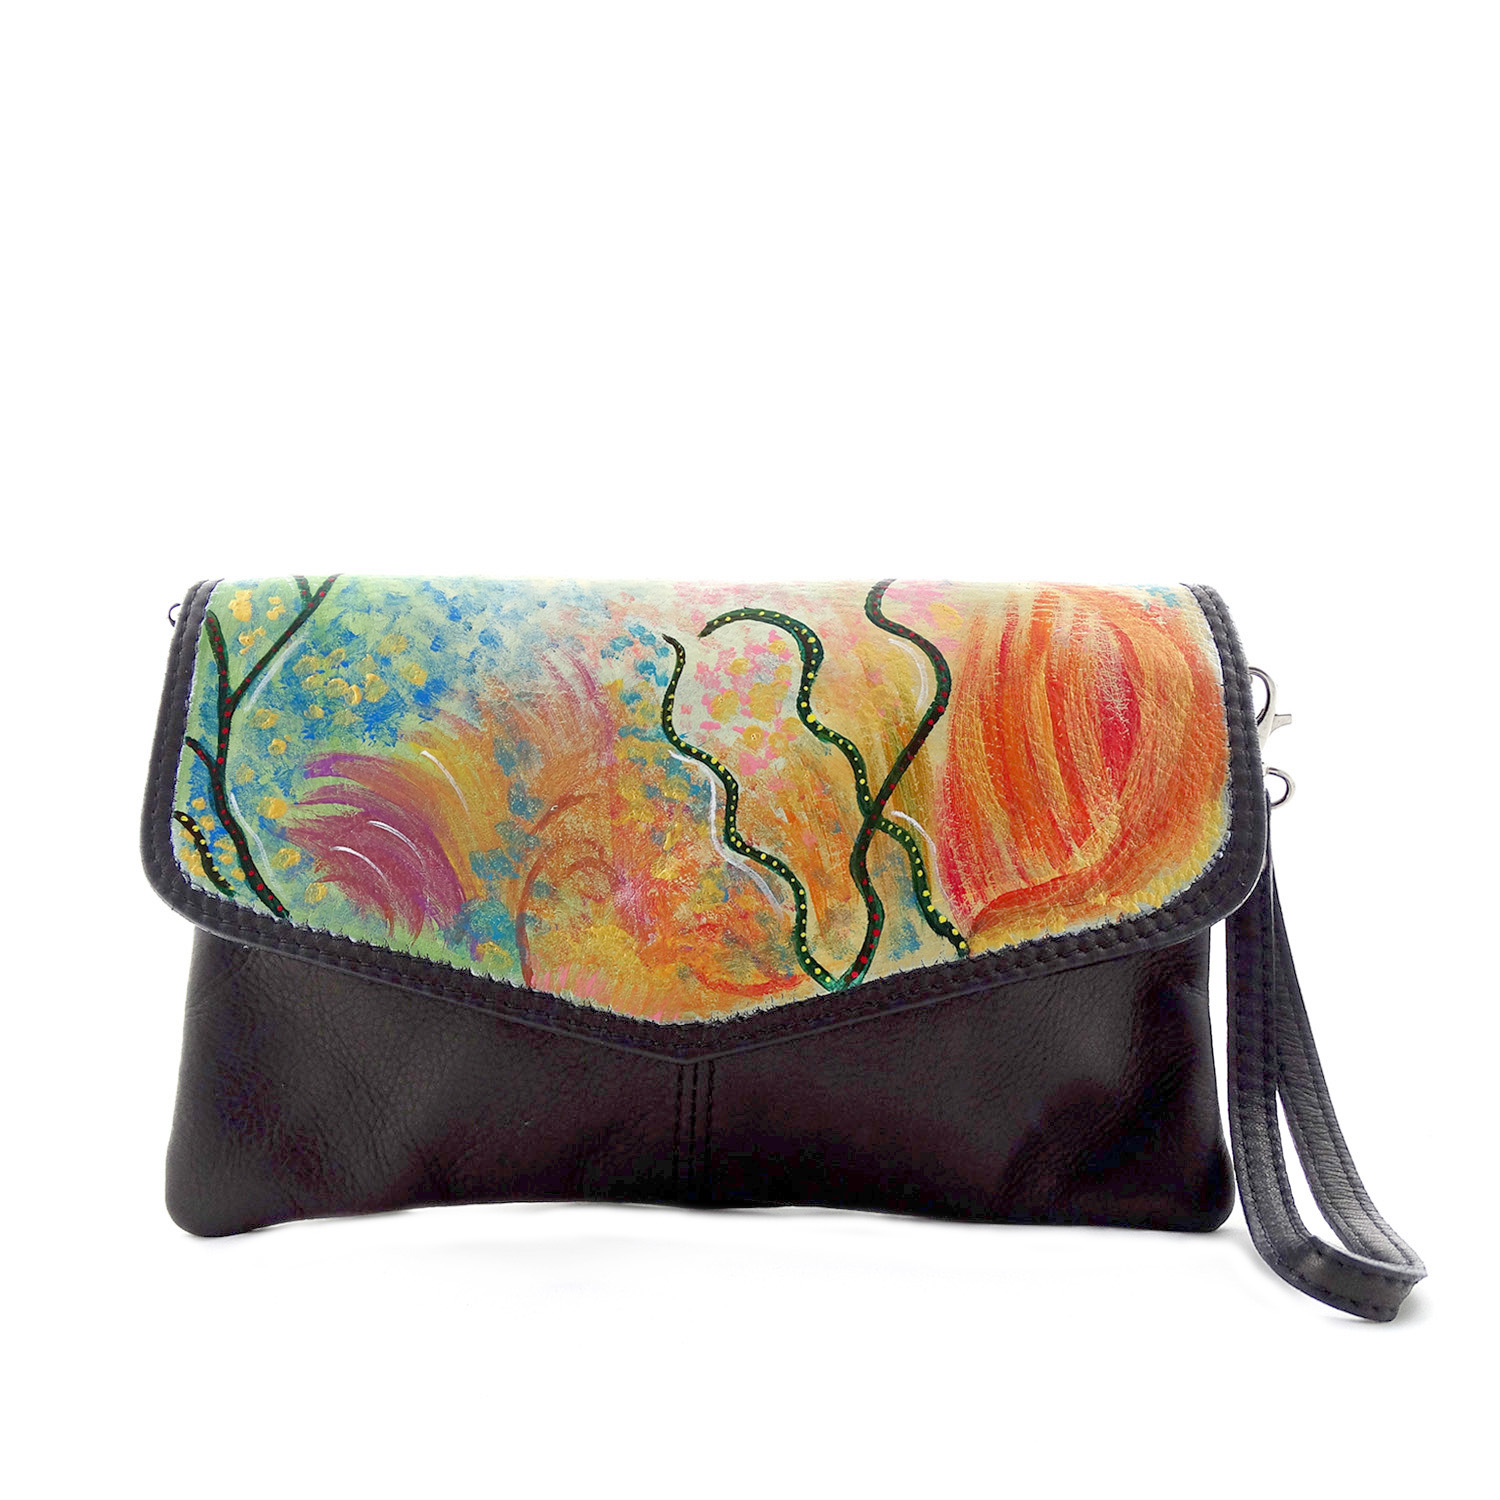 Hand-painted bag - Enchanted Garden